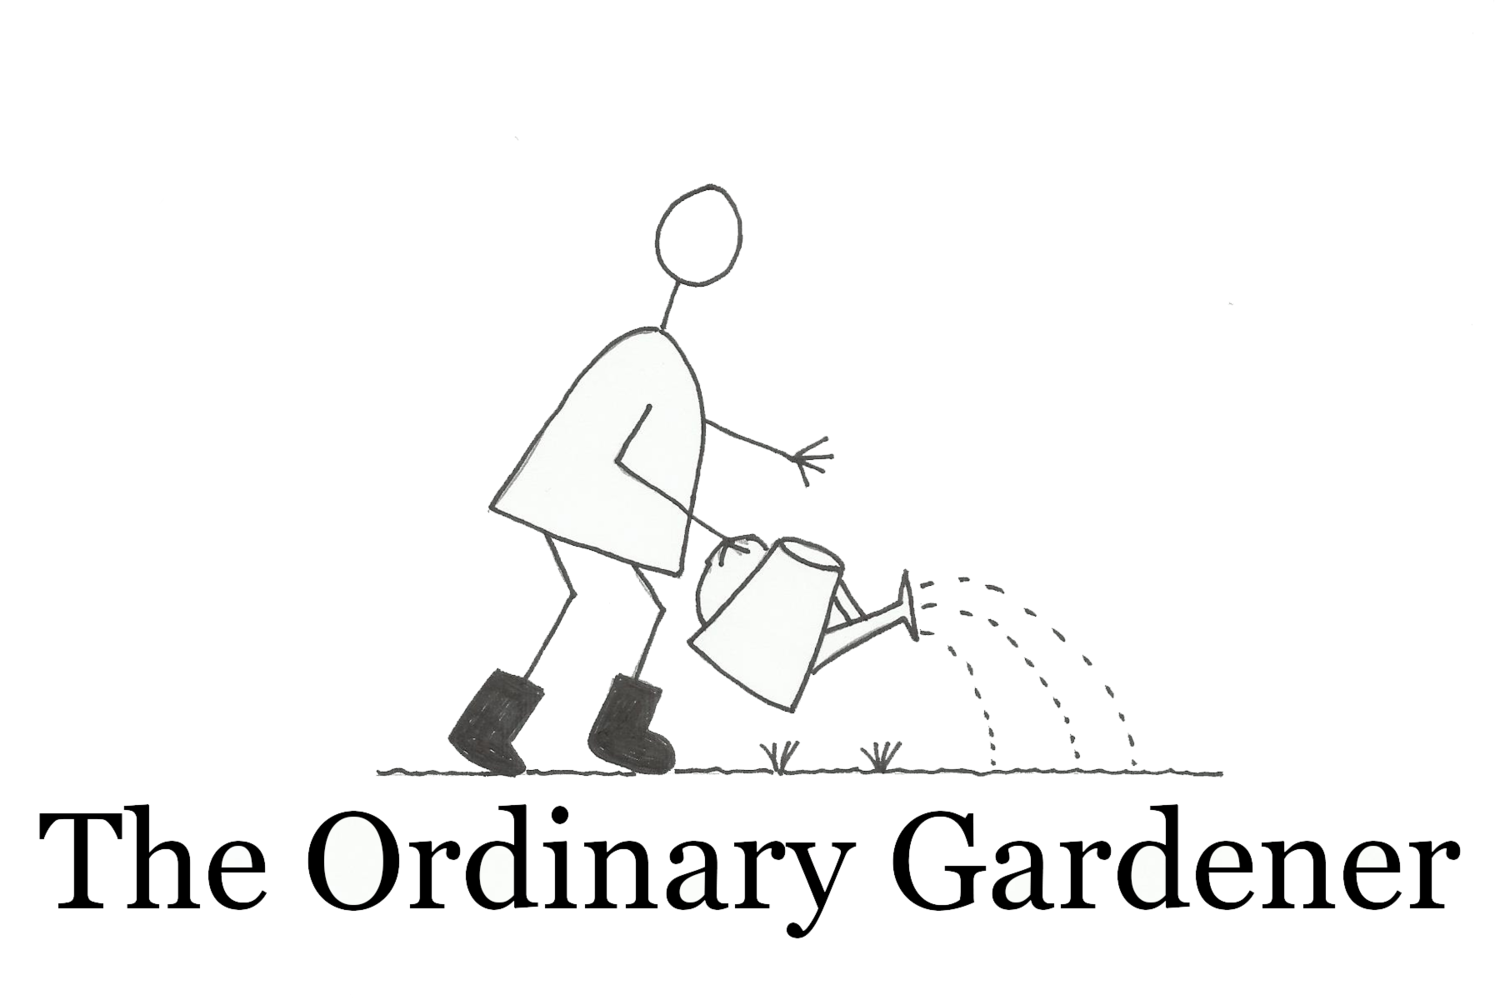 The Ordinary Gardener